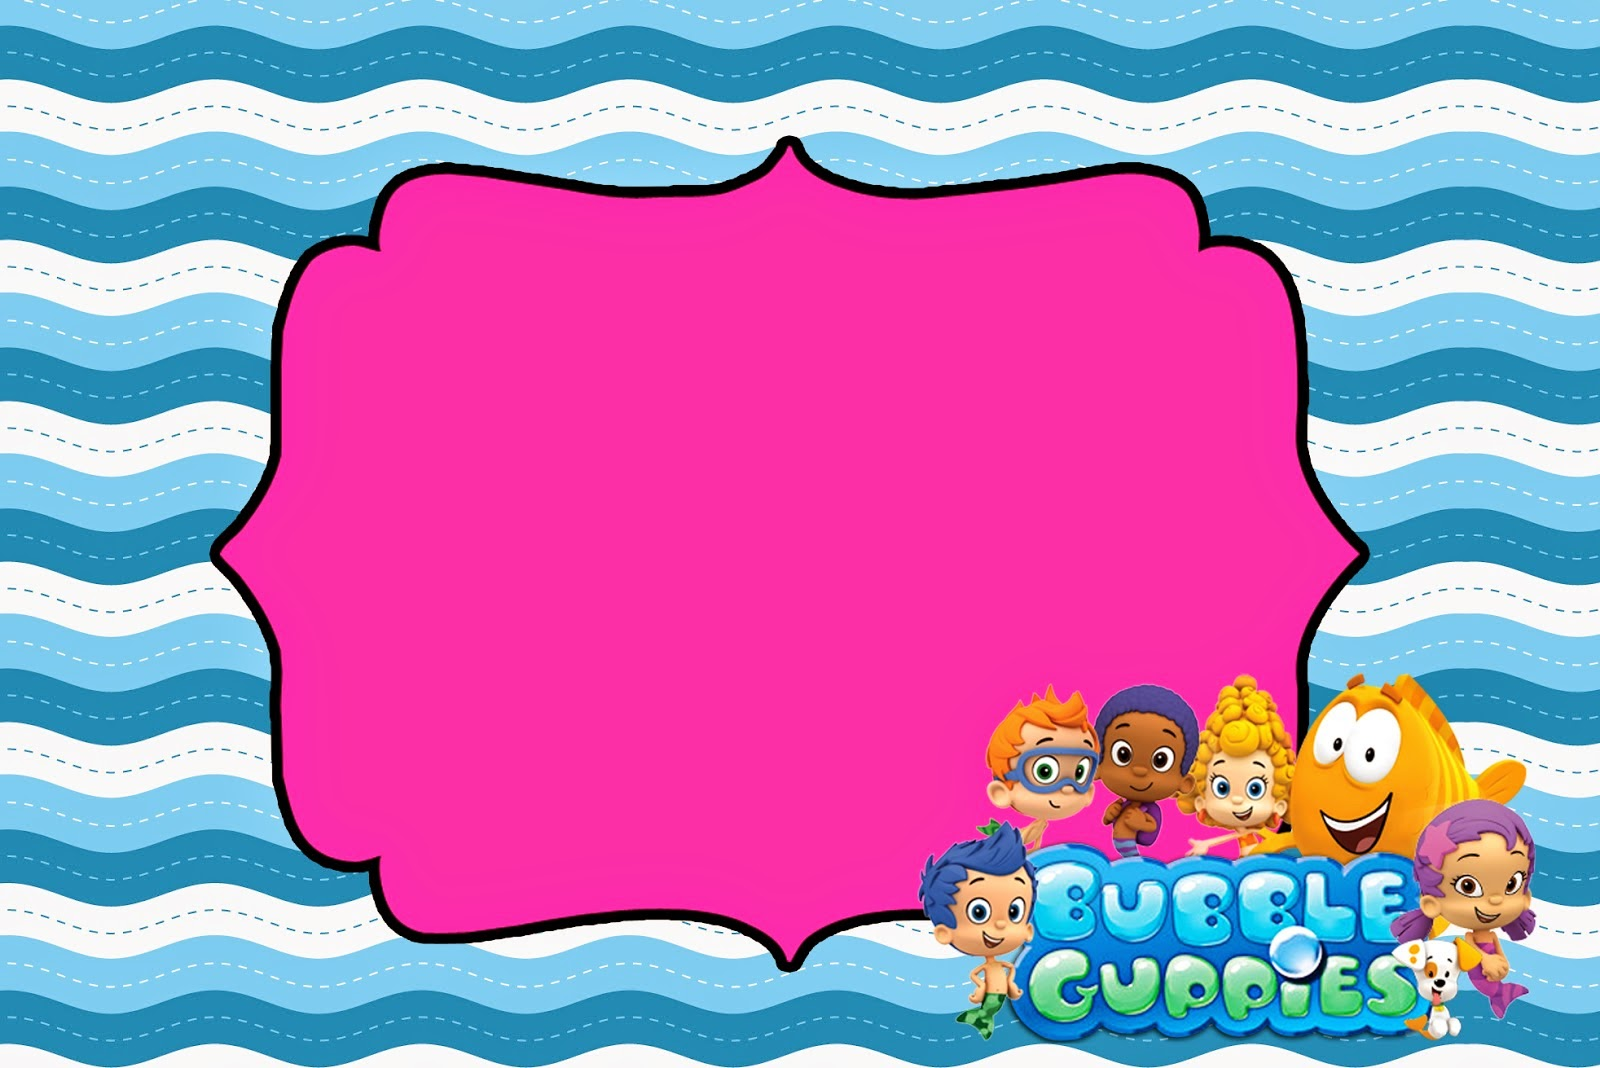 Bubble guppies free printable invitations oh my fiesta in english bubble guppies free printable invitations maxwellsz